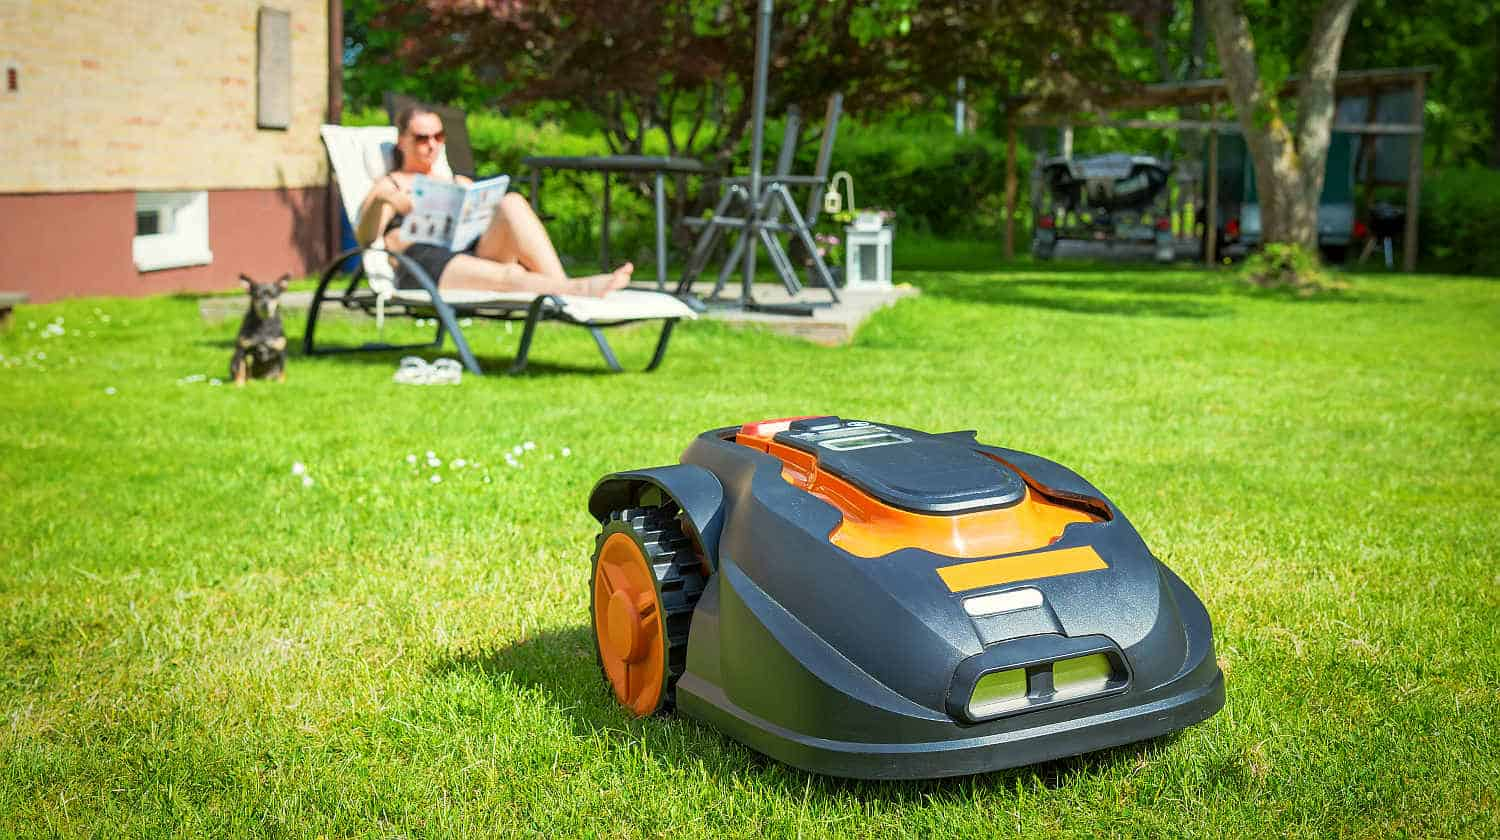 Automatic lawnmower in modern garden | Robotic Lawn Mowers and Other Smart Gadgets for the (Hard) Yard Work | best lawn mower | Featured